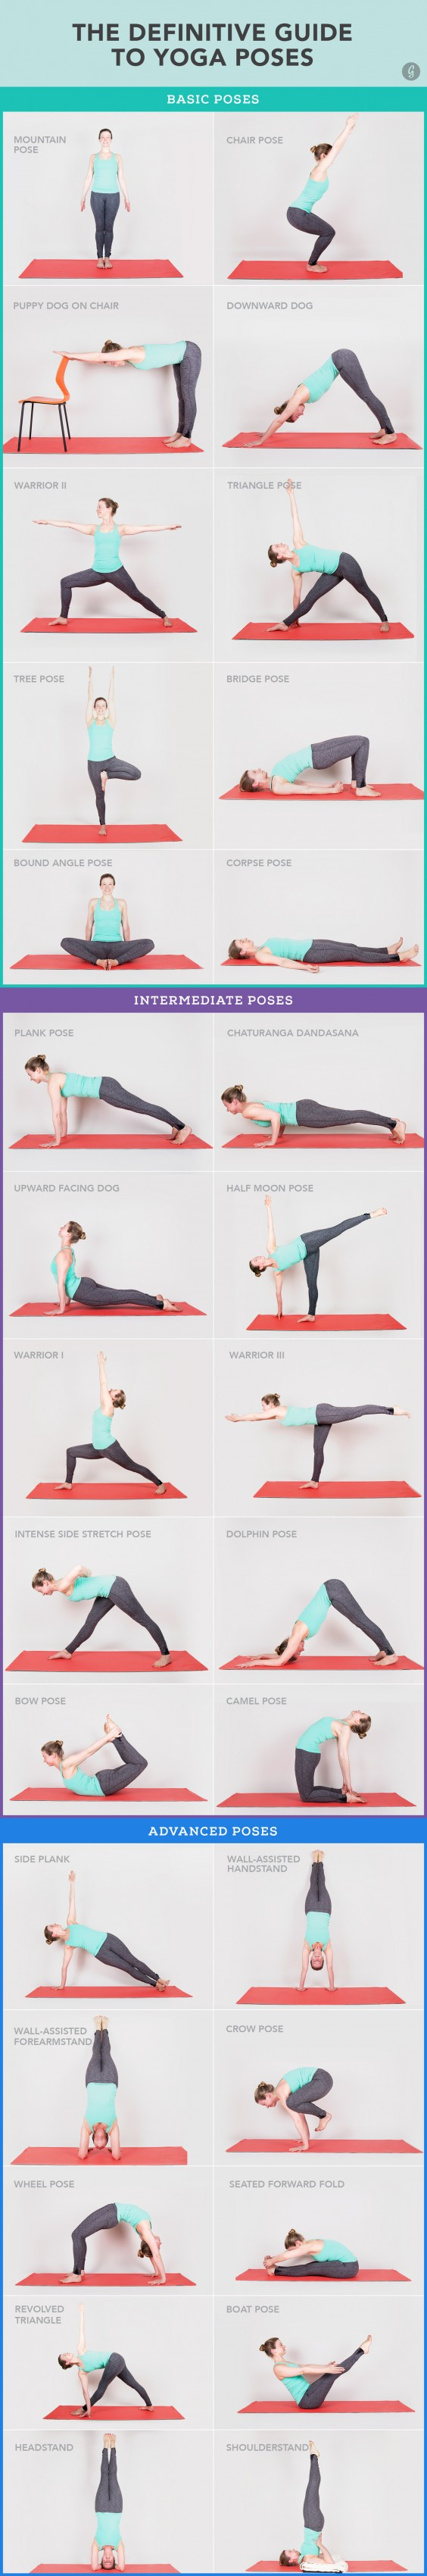 Basic Yoga Poses: 40 Common Yoga Moves and How to Master Them